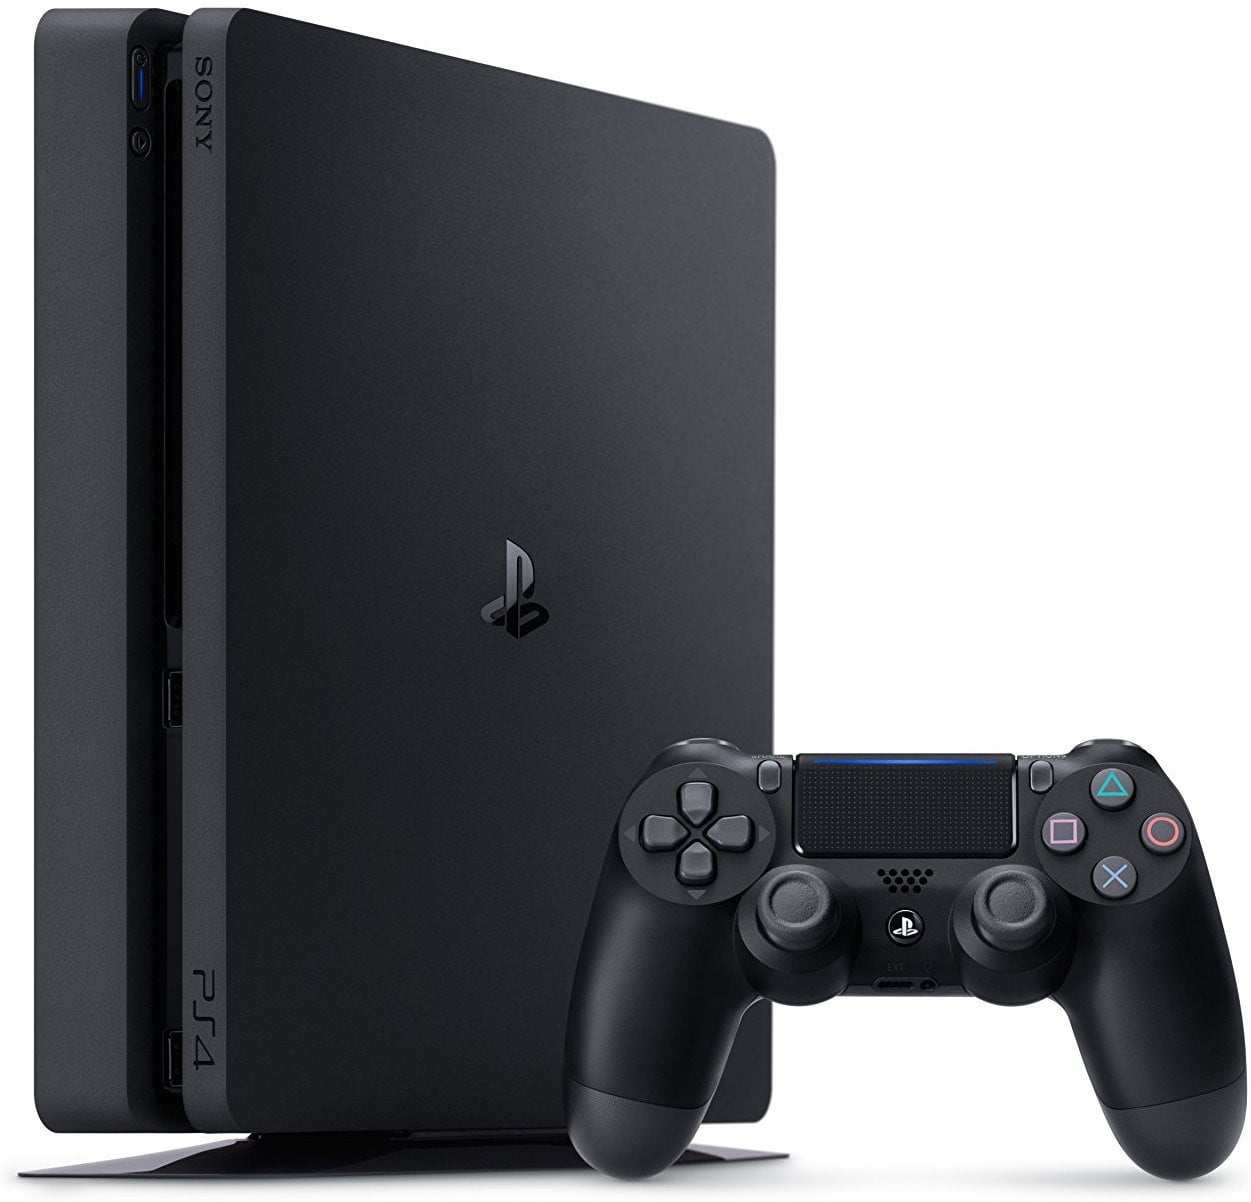 Buy PlayStation 4 (PS4) Slim 500G Black PS4 Console in Egypt - Shamy Stores